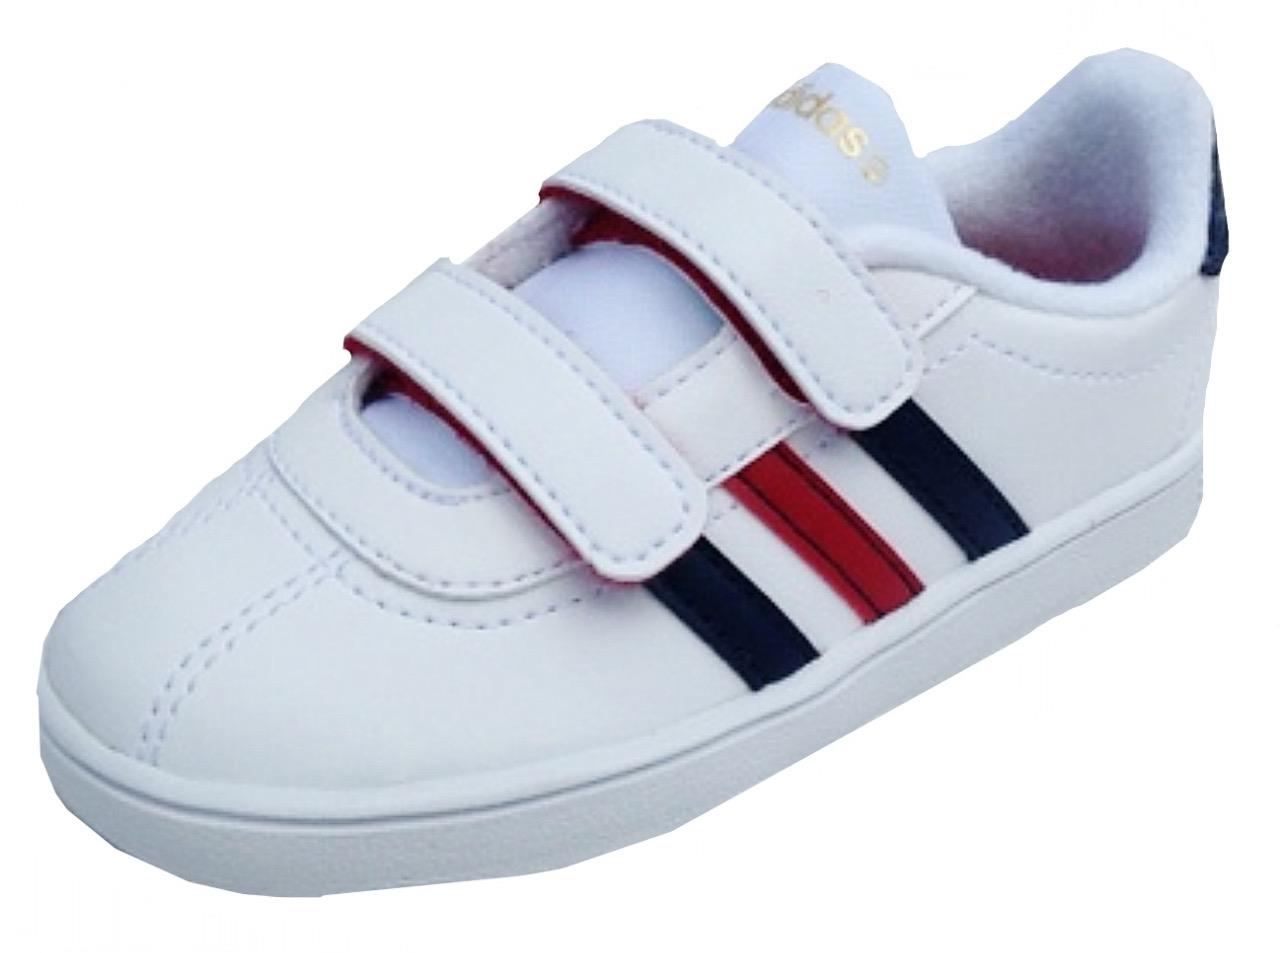 adidas trainers infant size 7